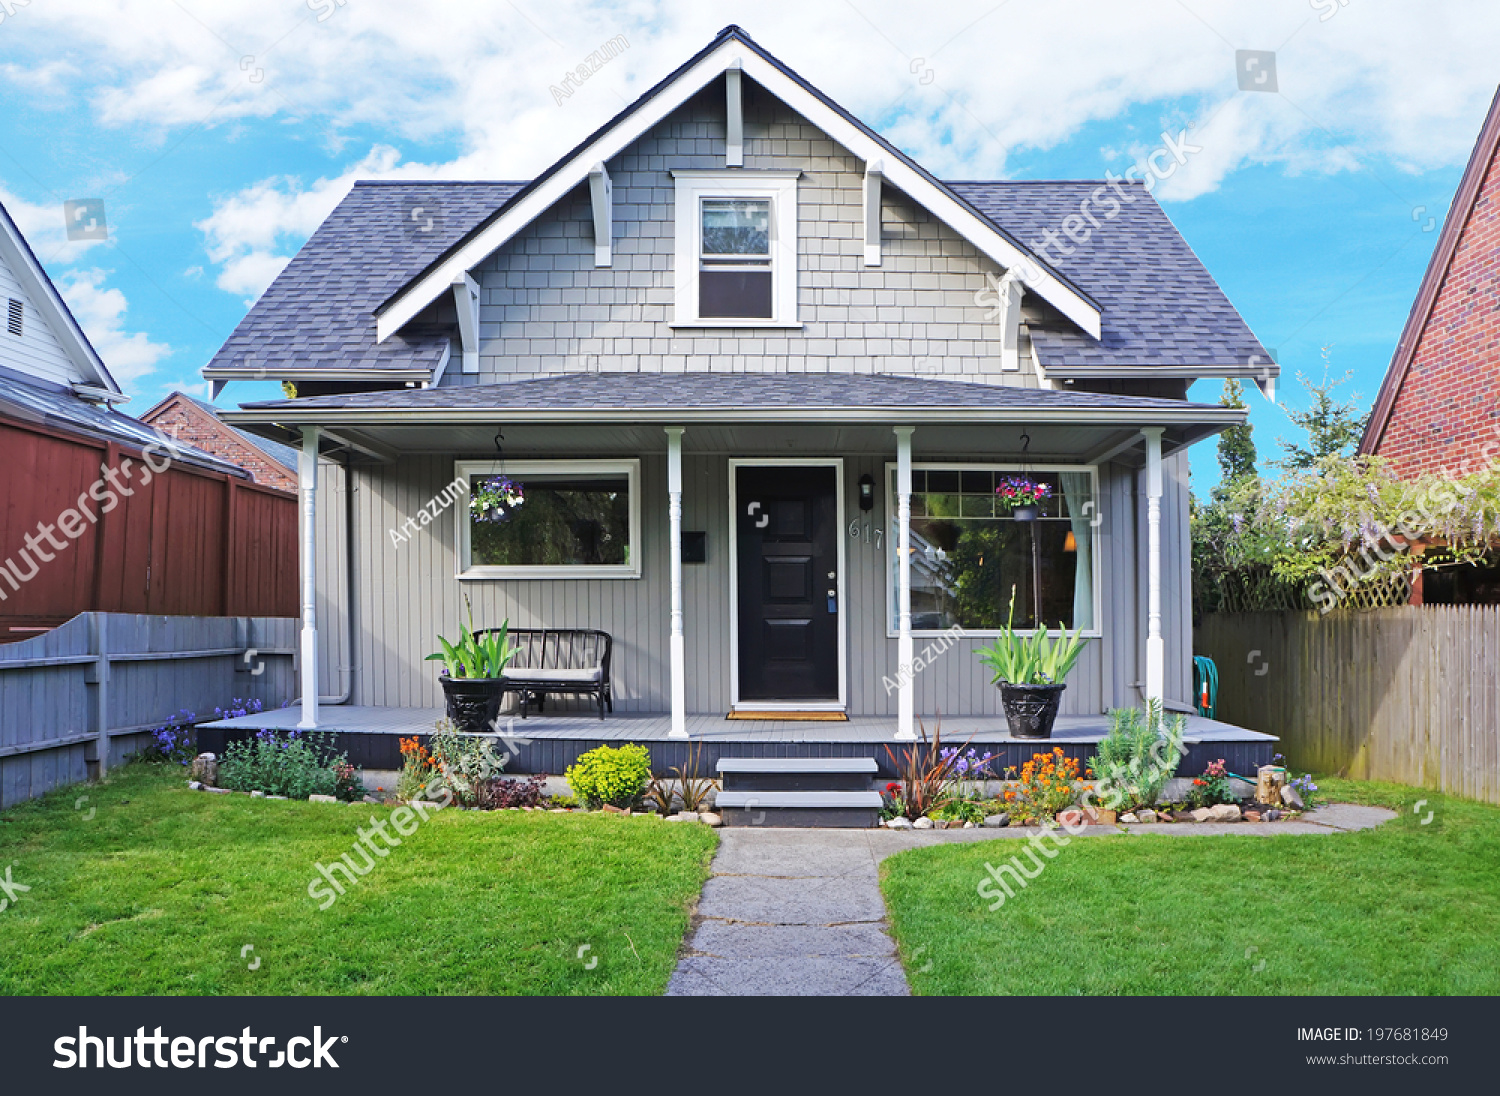 Small Old House Entrance Porch Decorated Stock Photo 197681849 - Shutterstock